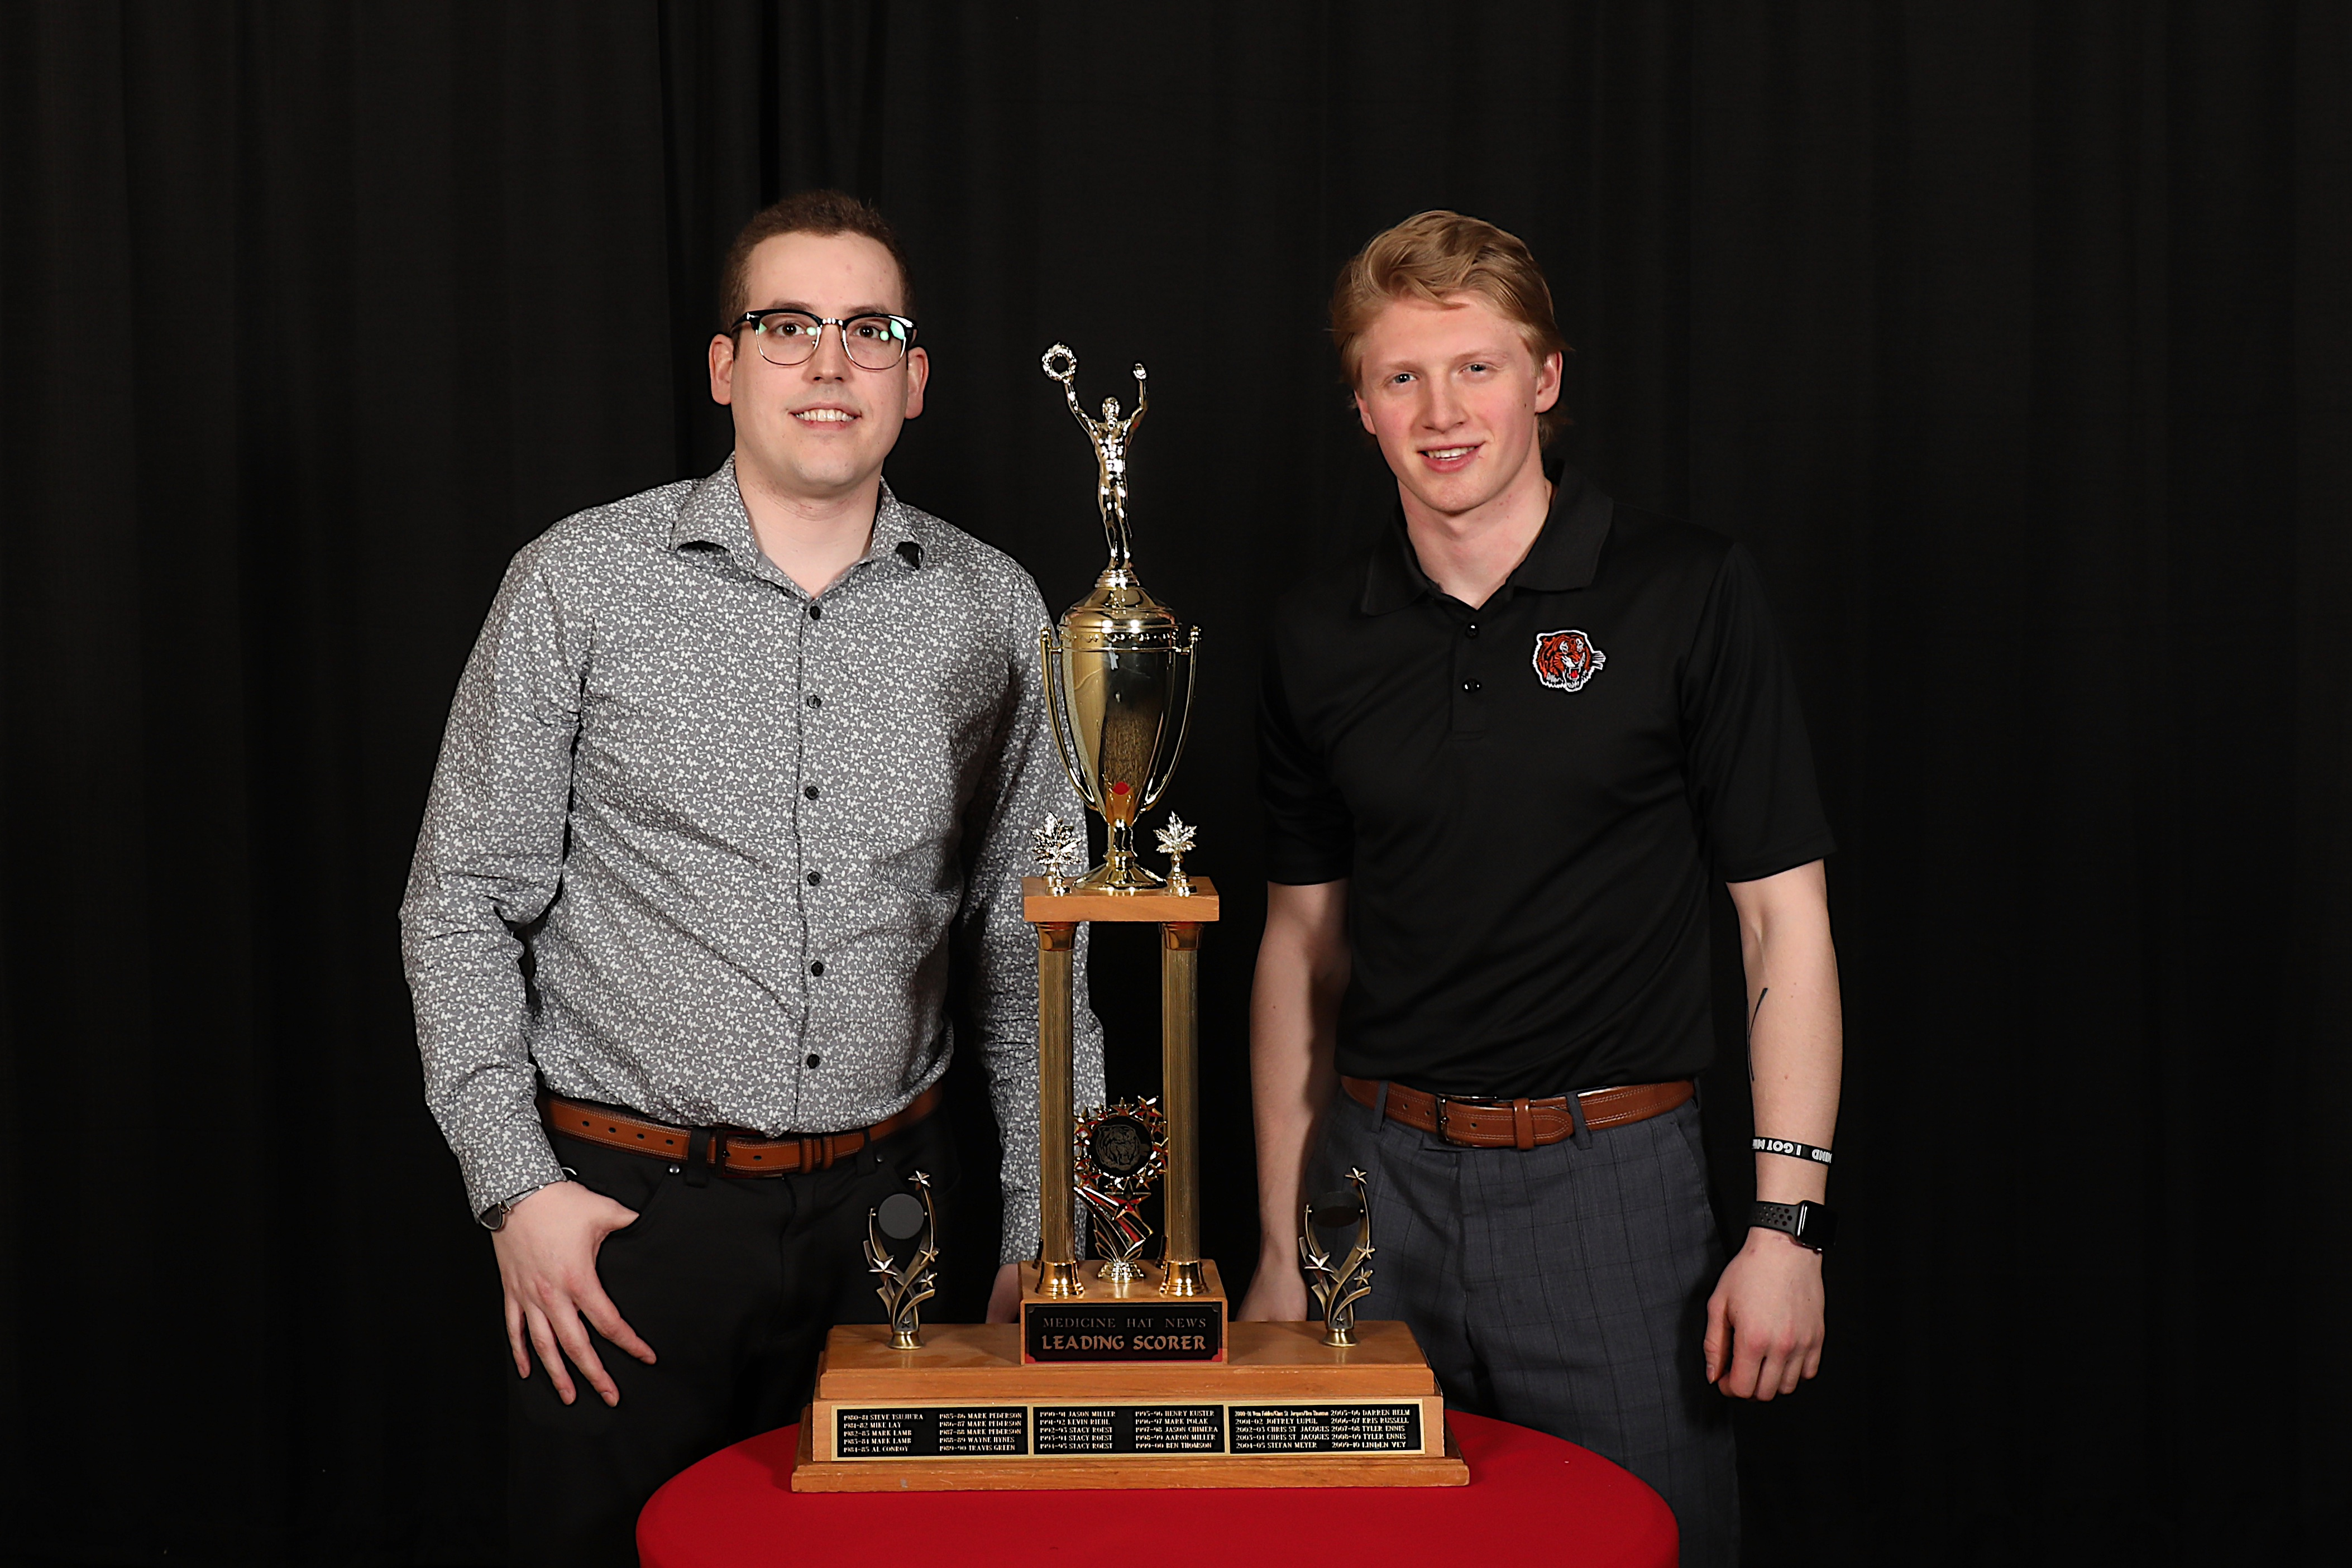 Ryan McCracken of the Medicine Hat News presents the Medicine Hat News Leading Scorer Award to James Hamblin